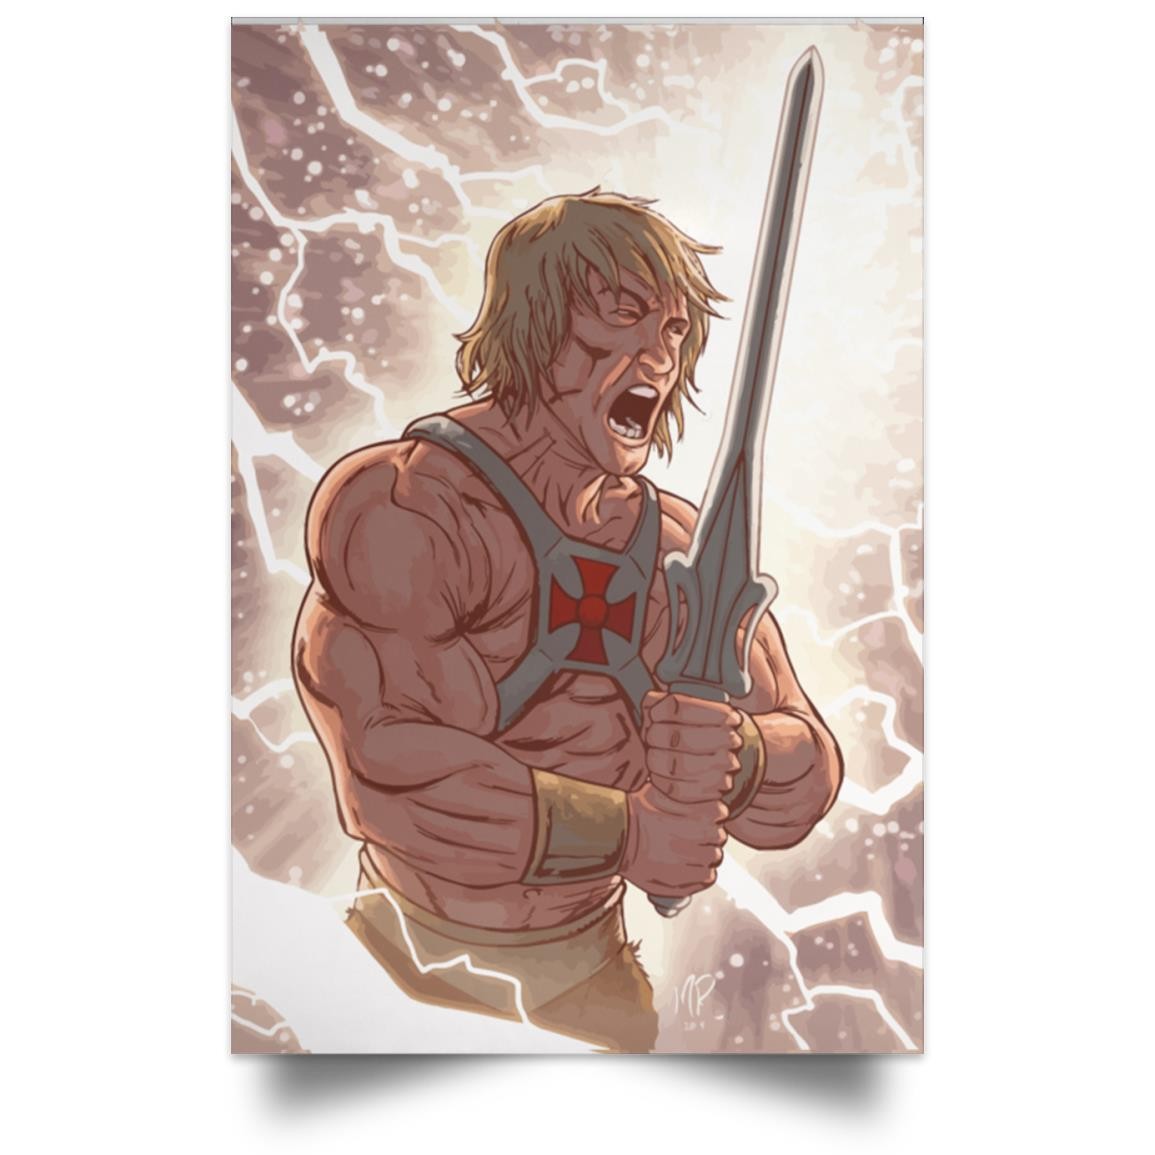 MASTERS OF THE UNIVERSE HE-MAN I HAVE THE POWER POSTER 1